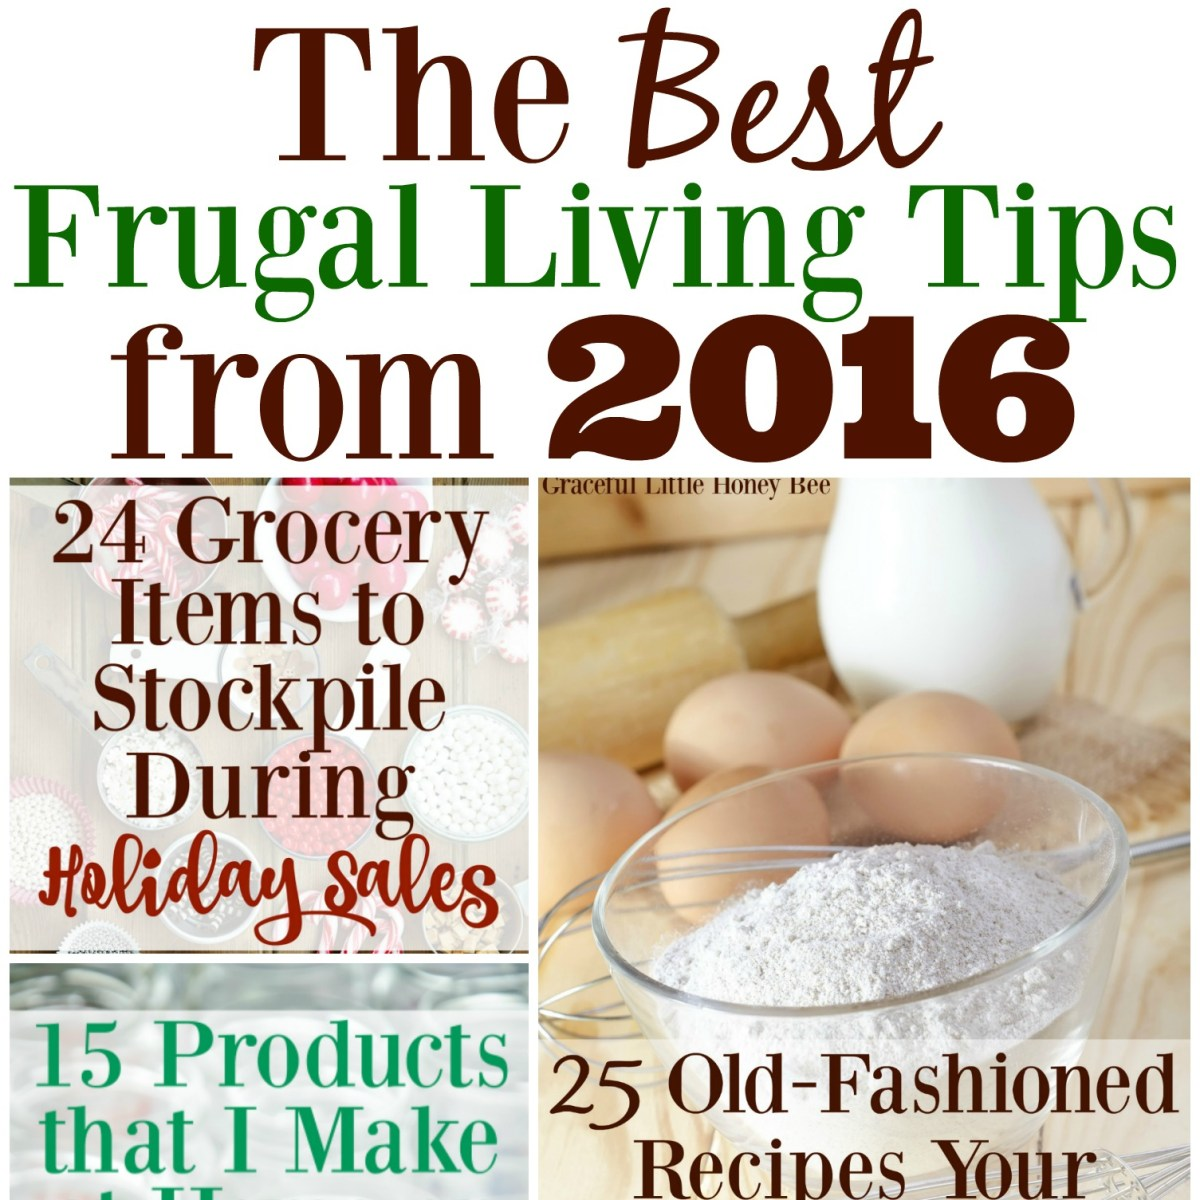 The Best Frugal Living Tips from 2016